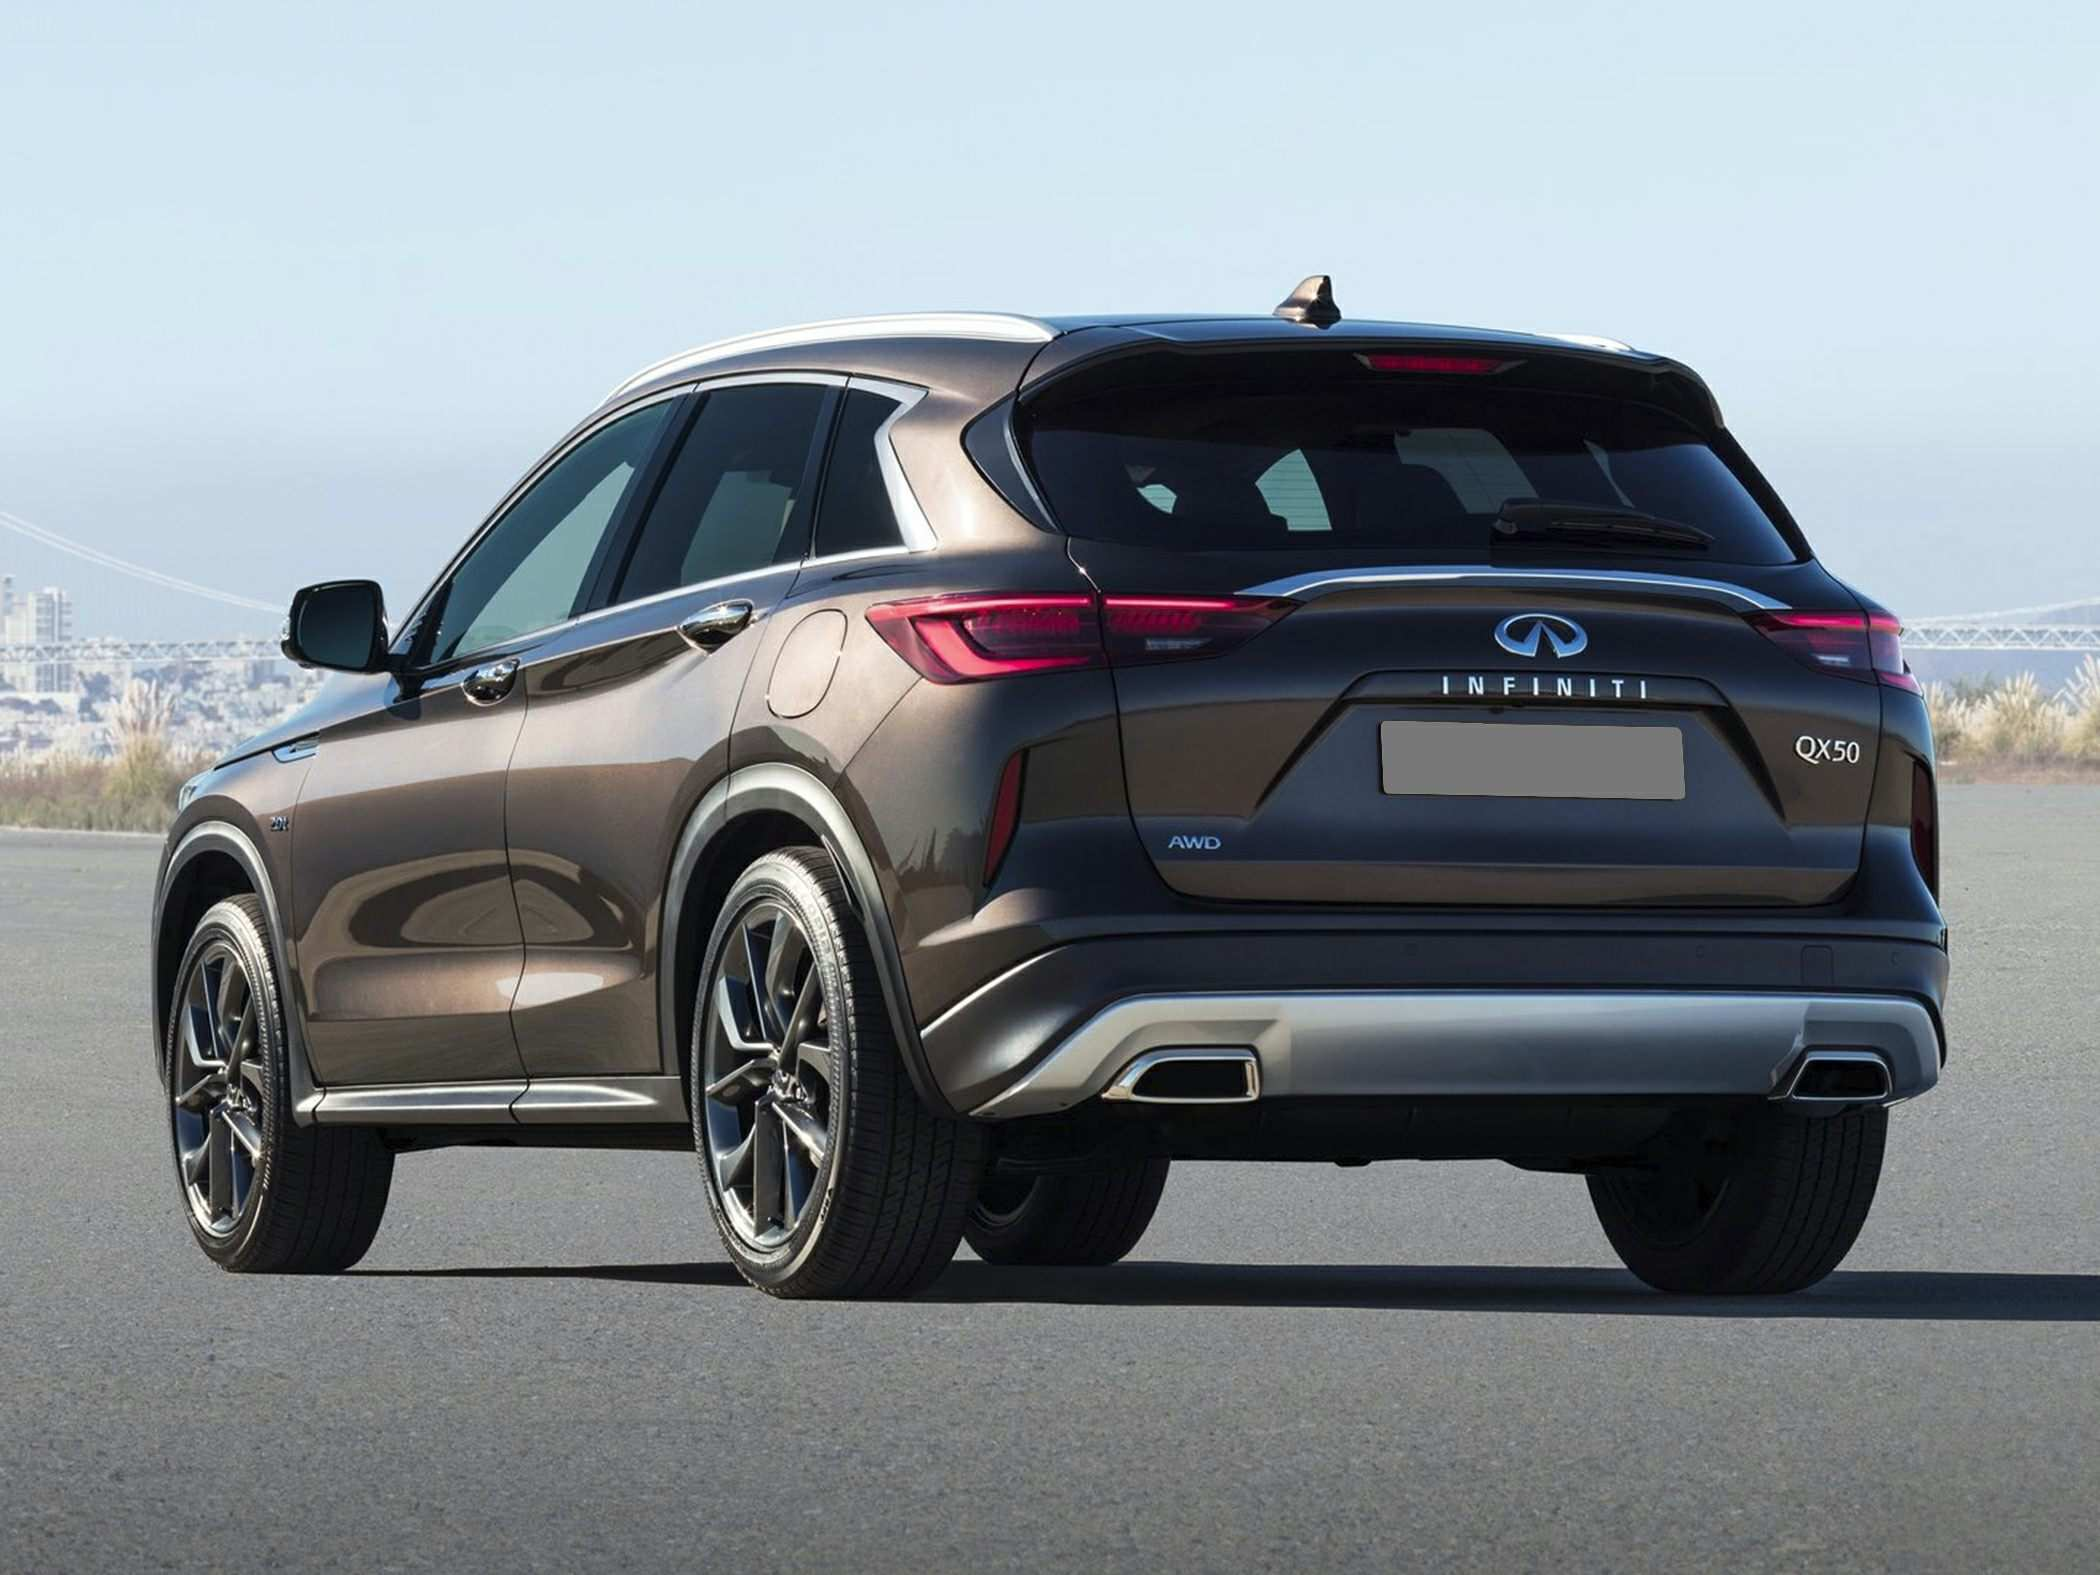 64 Great Infiniti Qx50 2019 Images Overview And Price Picture with Infiniti Qx50 2019 Images Overview And Price